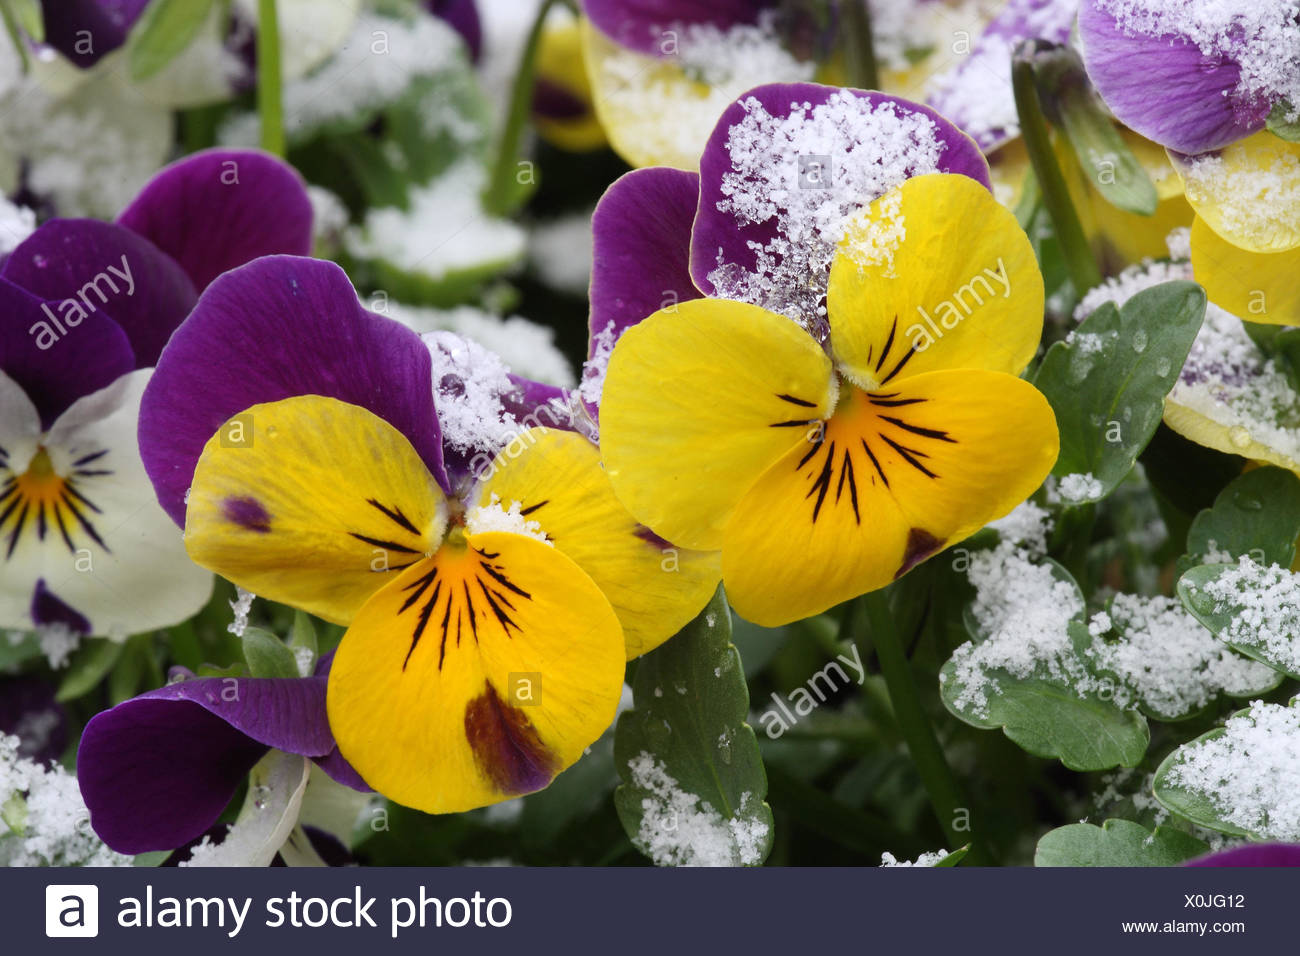 Violets Flower Stock Photos Violets Flower Stock Images Alamy